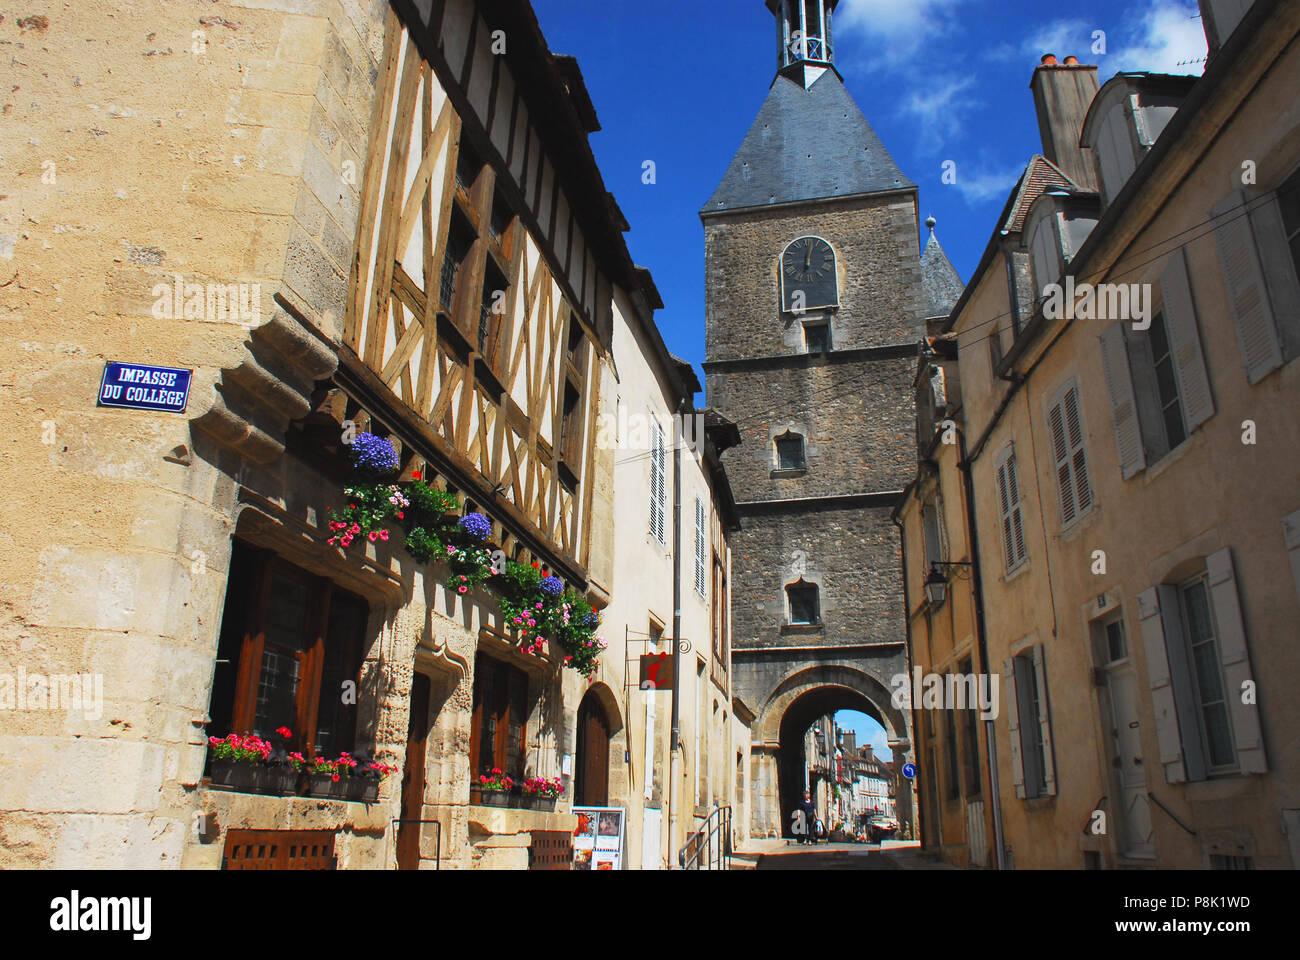 The Medieval town of Avallon is full of historic character.  Please note, the person in the distance is not recognizable. - Stock Image